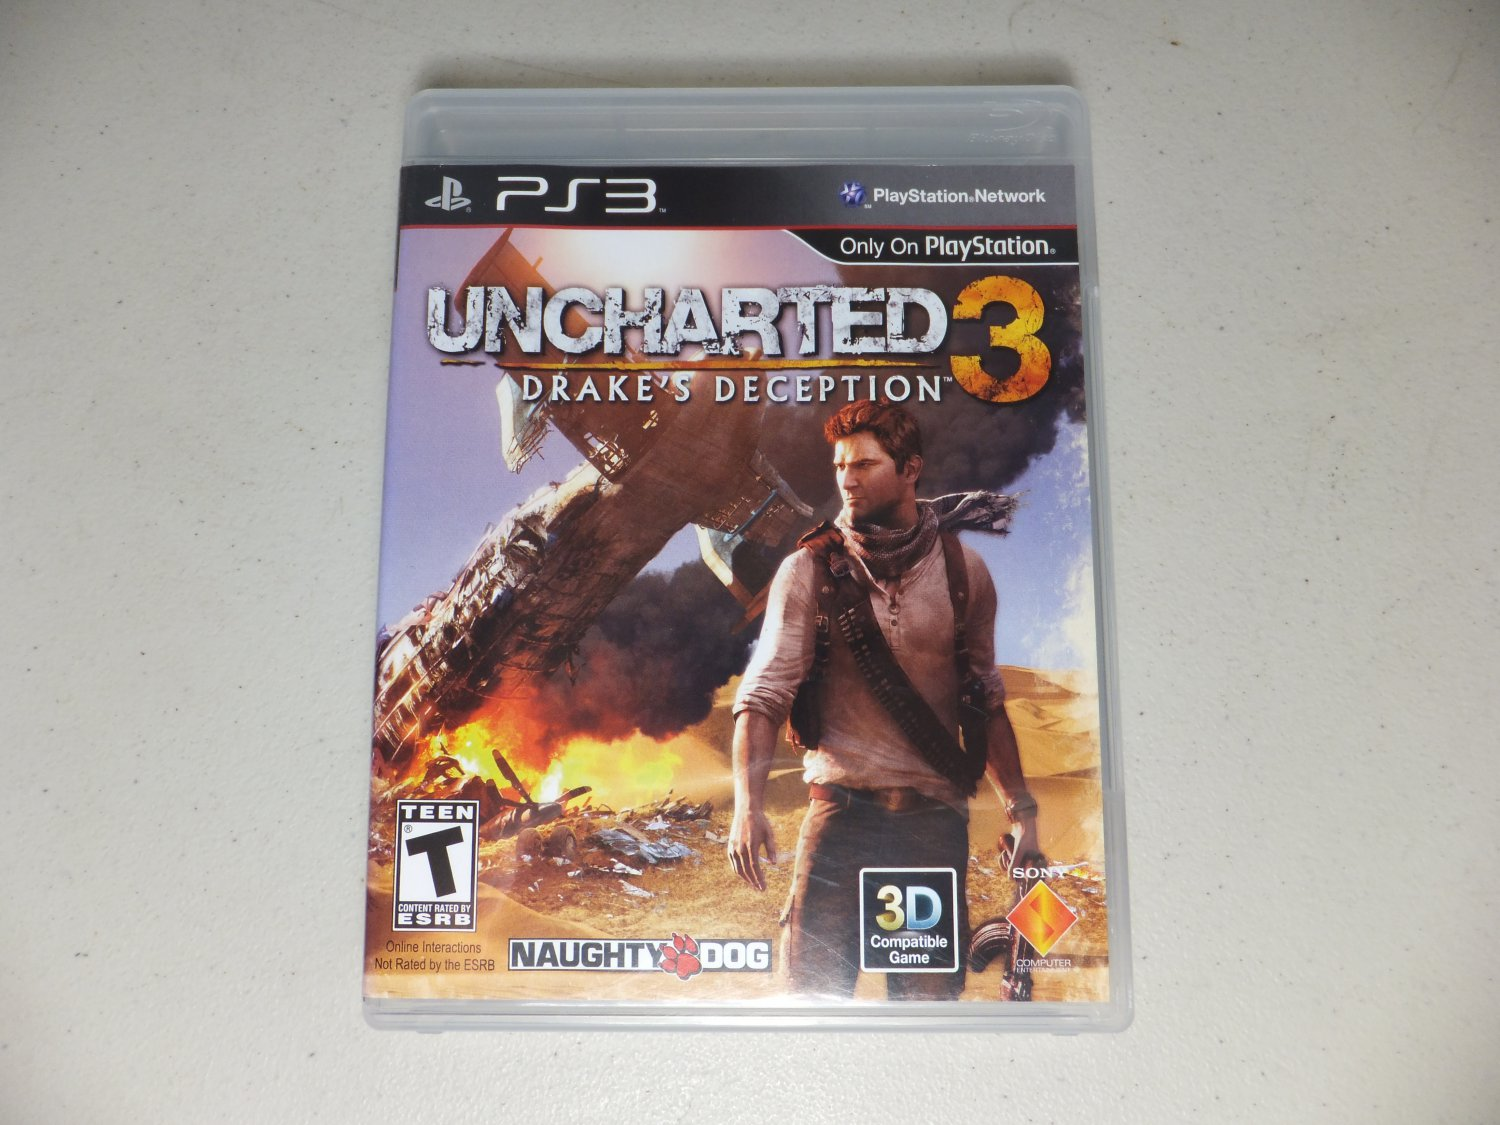 � Uncharted 3: Drake's Deception Sony PlayStation 3 PS3 Video Game 2011 ¤ MINT �